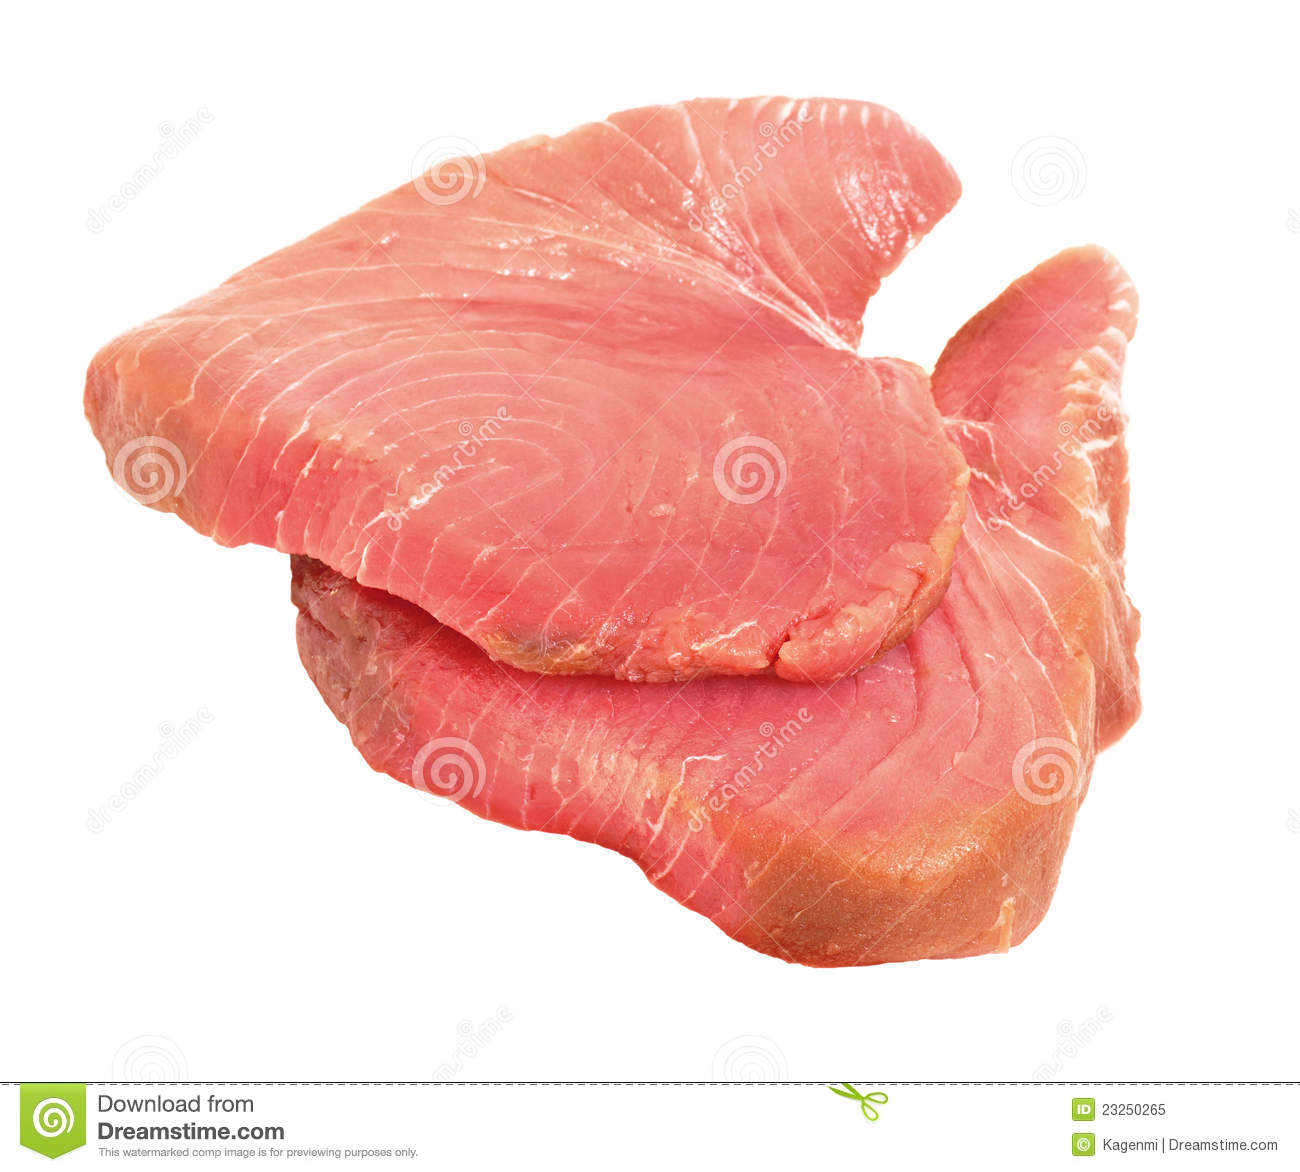 Raw tuna fish steaks royalty free stock photo image for Is tuna fish good for you